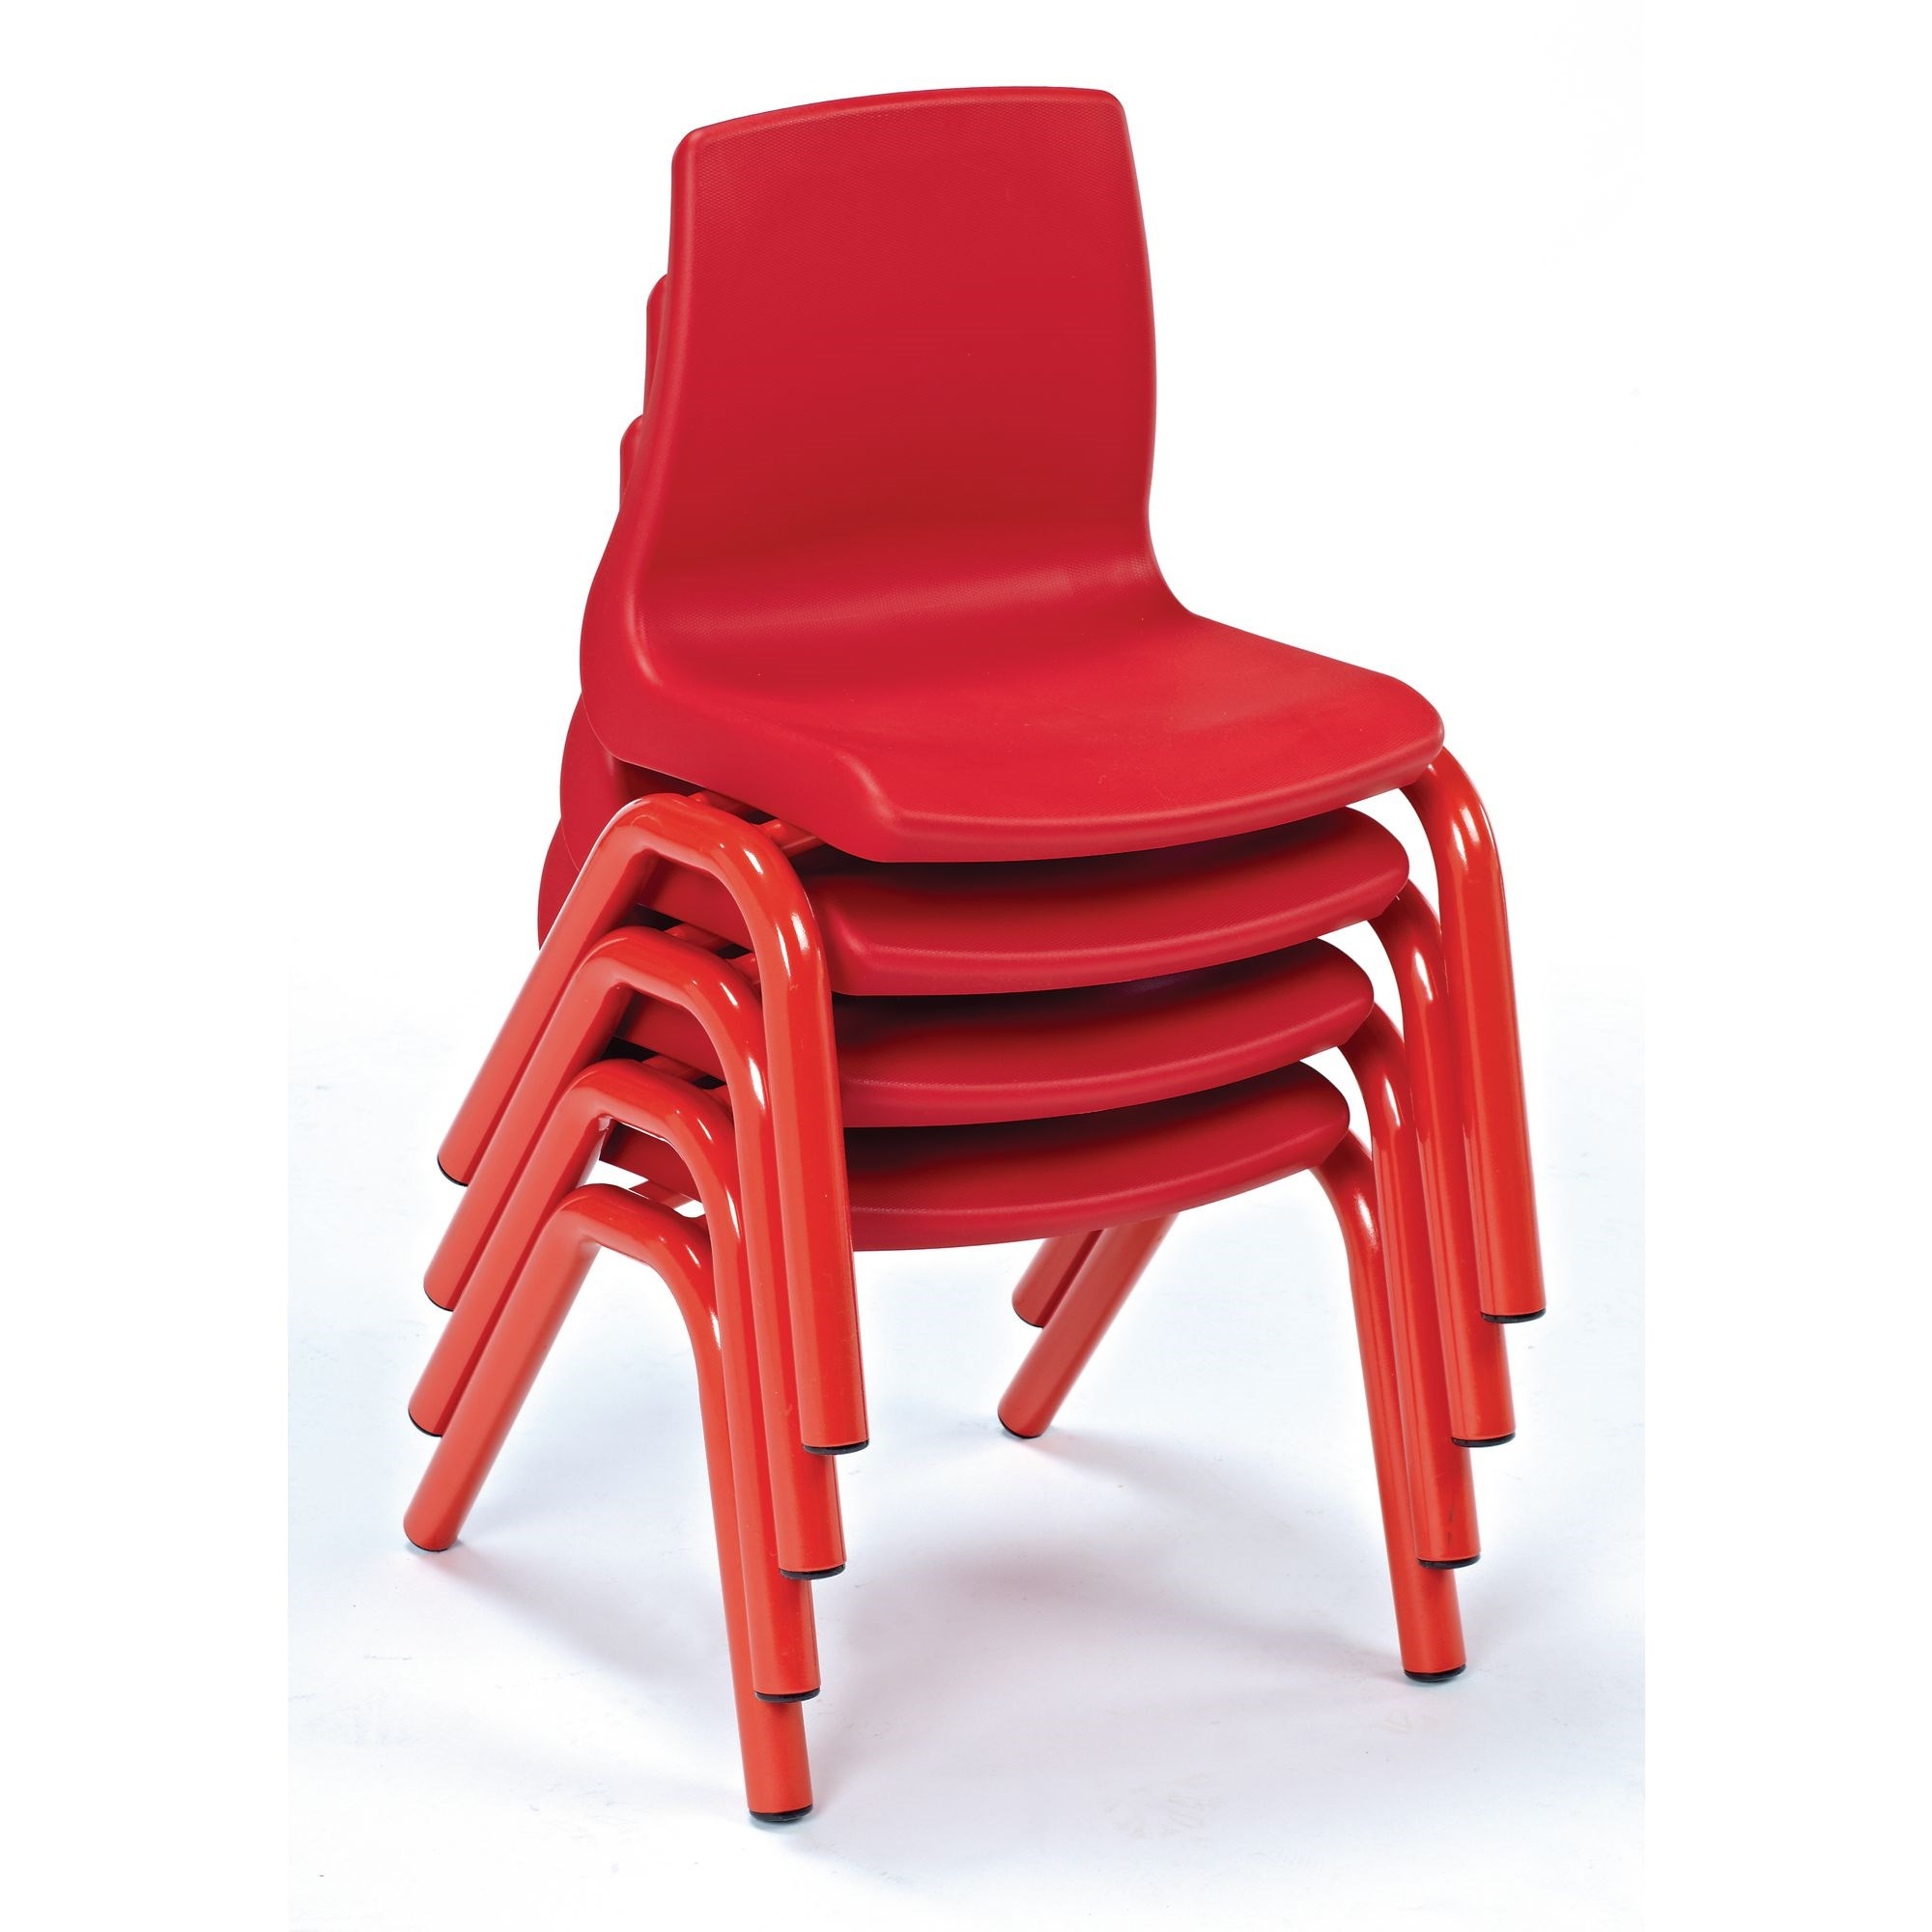 Harlequin Chairs Pre Sch Red